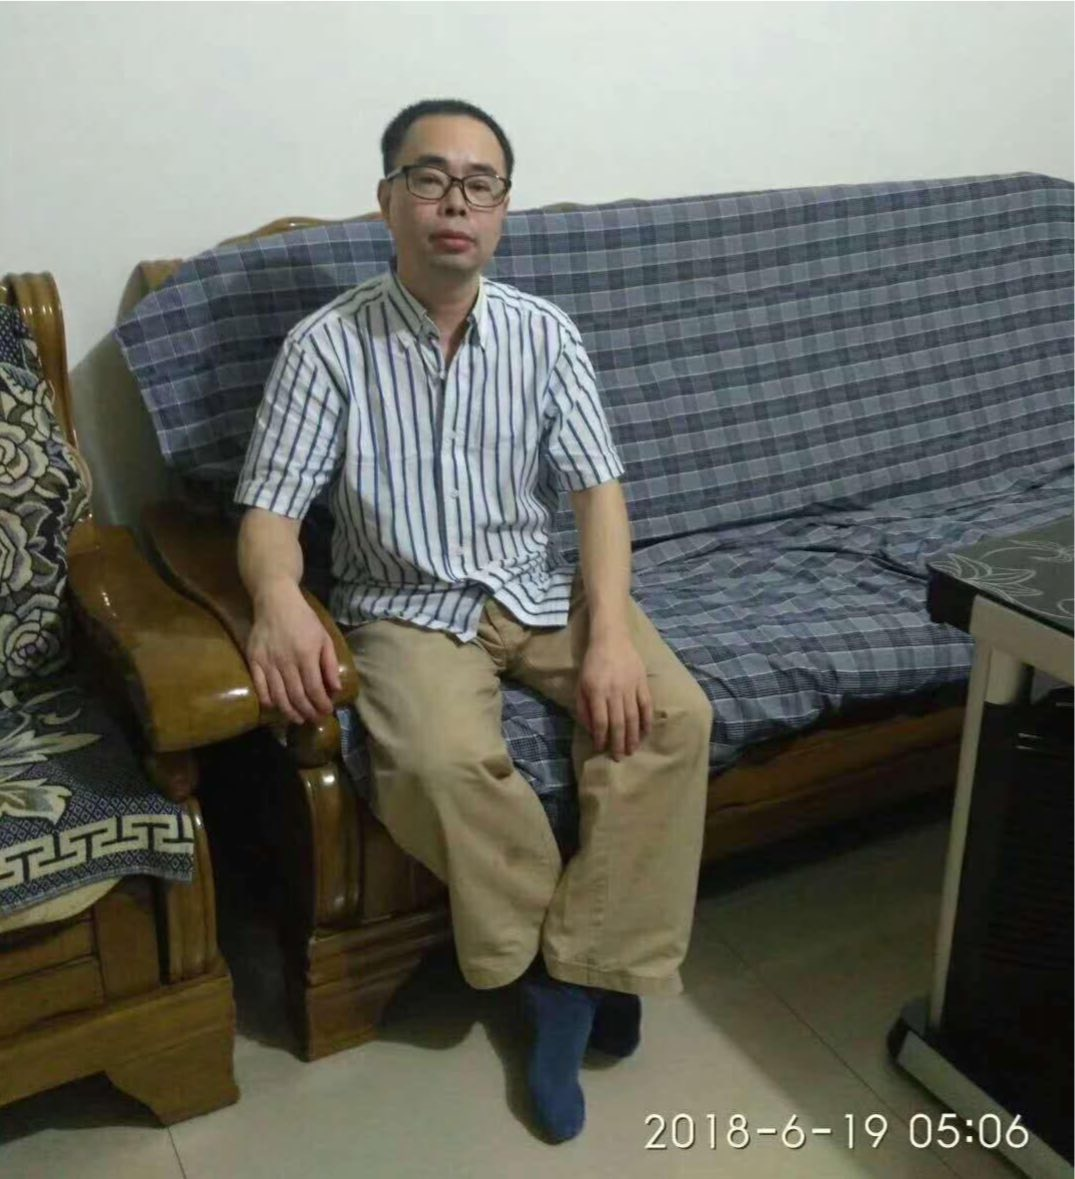 CHINA: Pastor Yang Hua released from prison